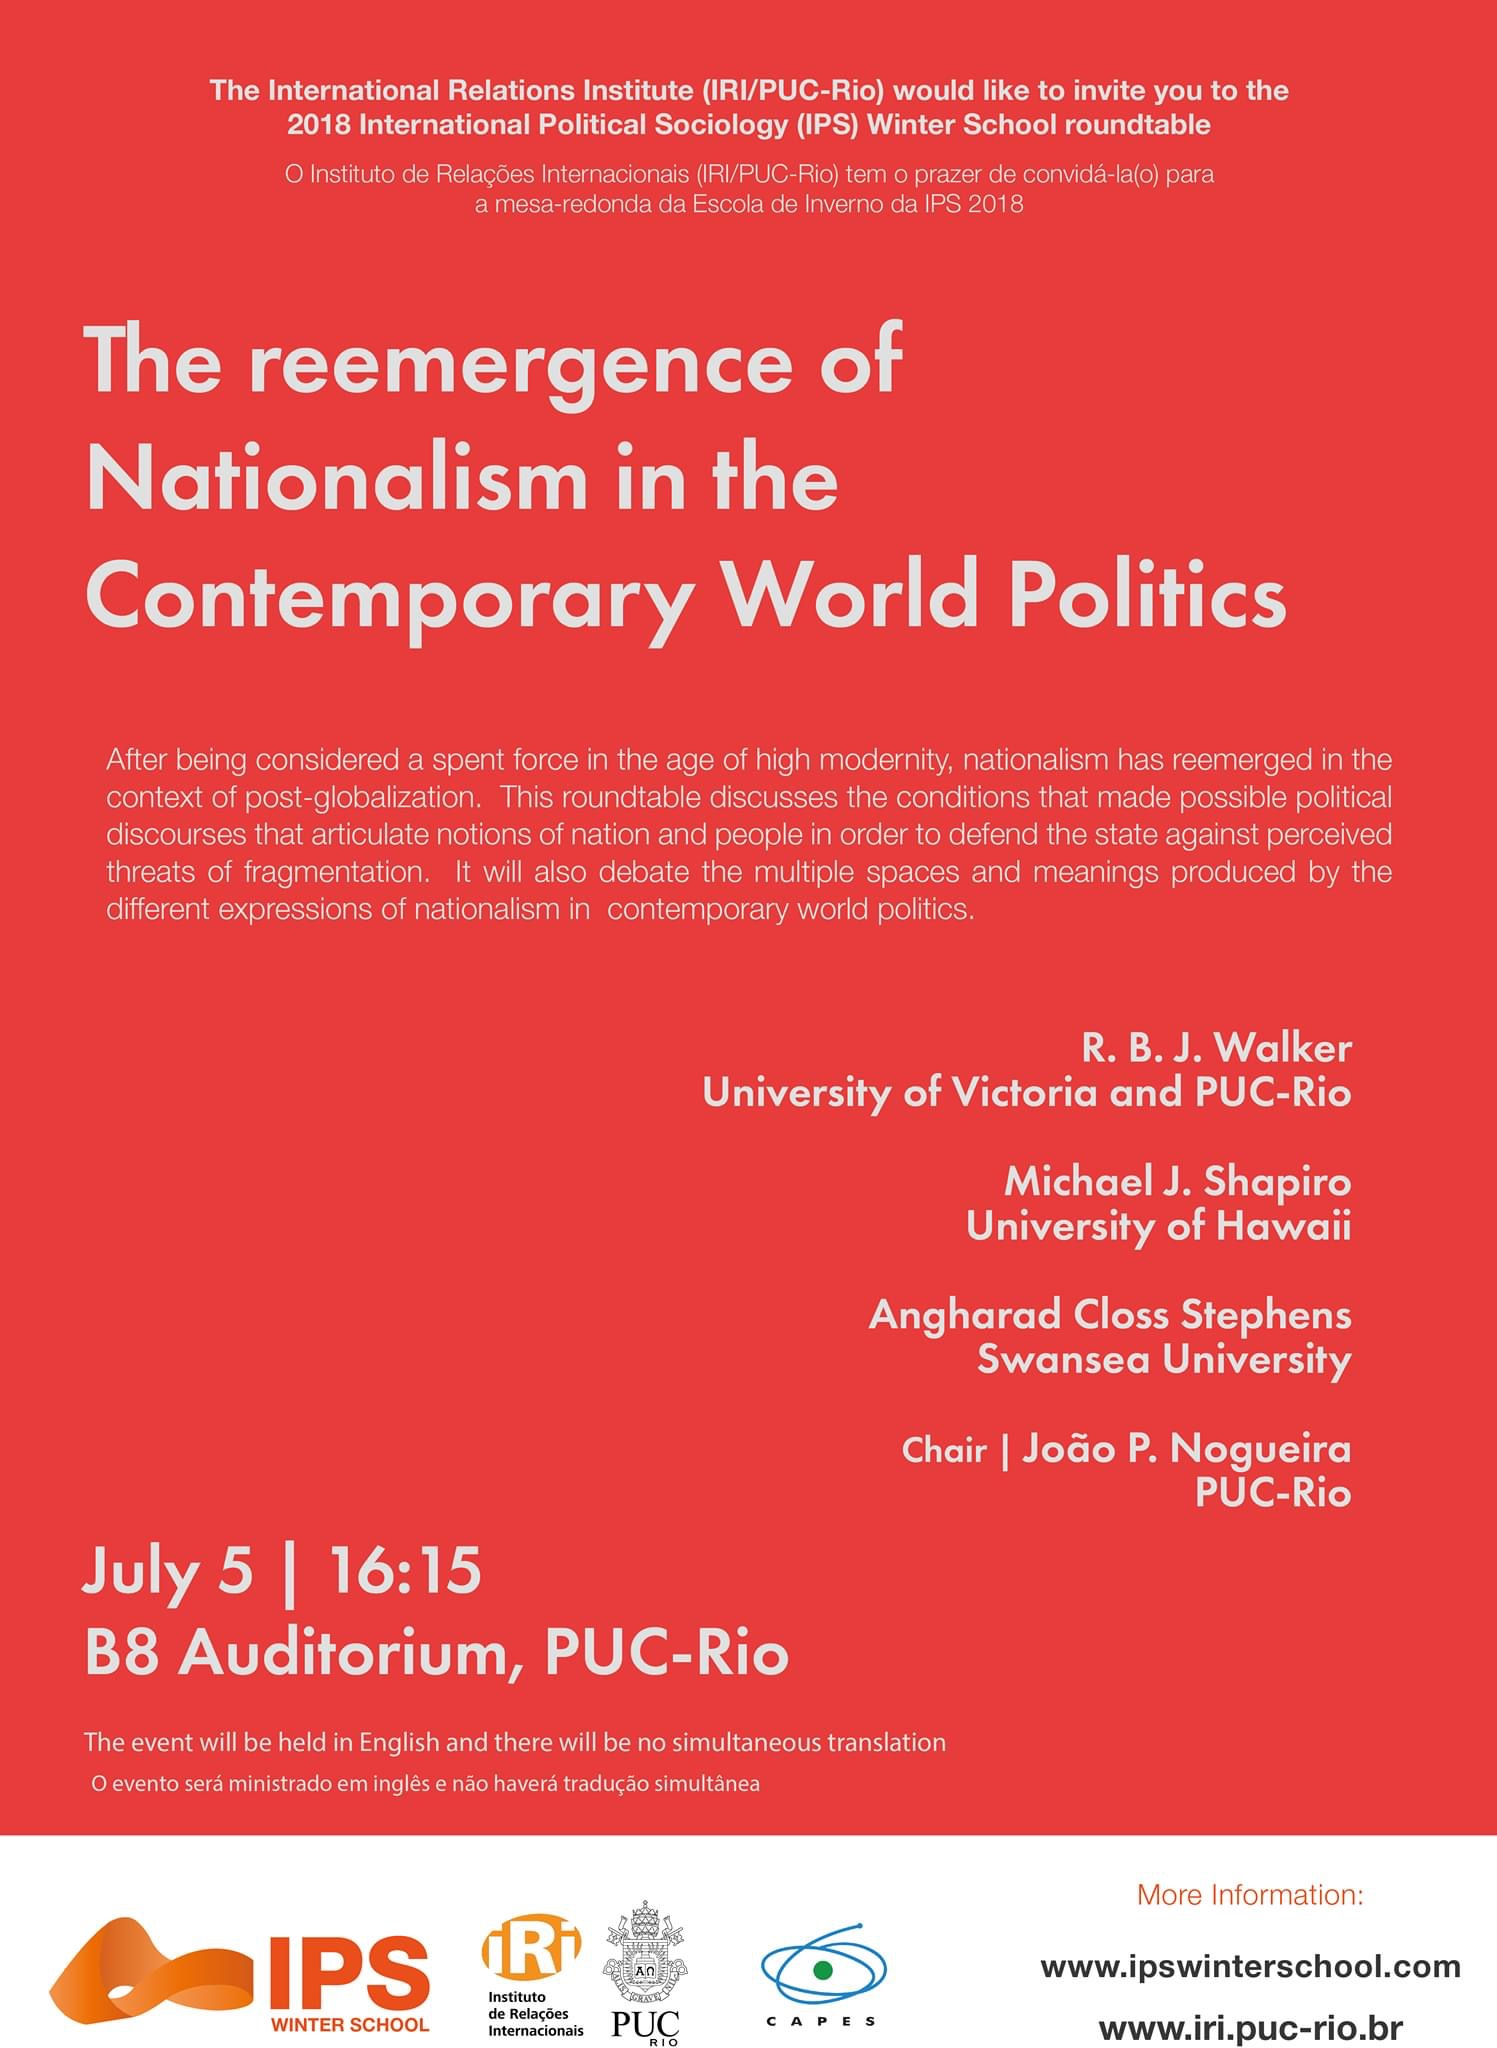 The reemergence of Nationalisms in the Contemporary World Politics